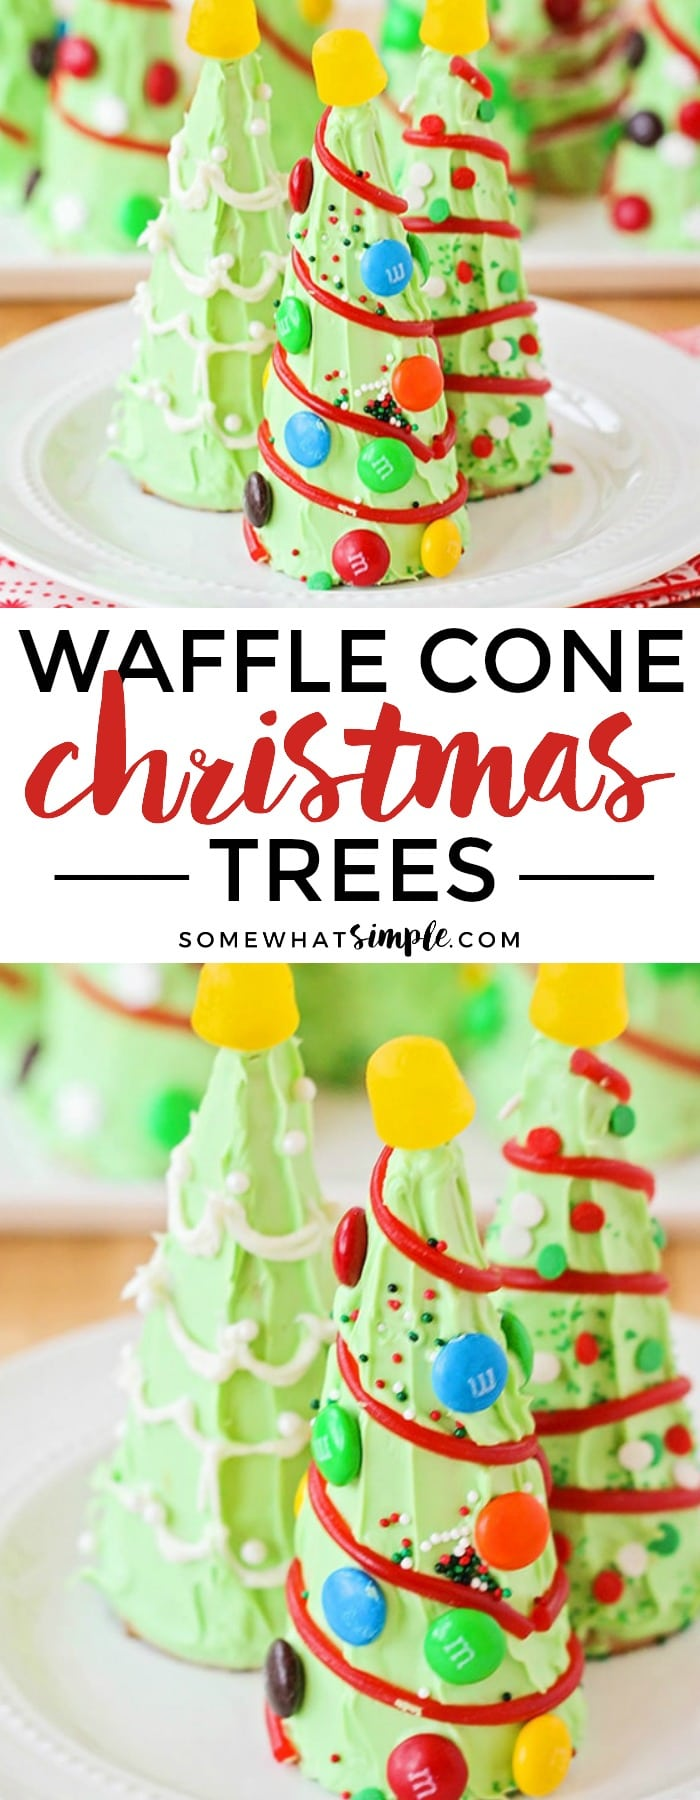 Looking for some Christmas Snacks to make with the kids? They will LOVE making their veryown waffle cone Christmas tree!